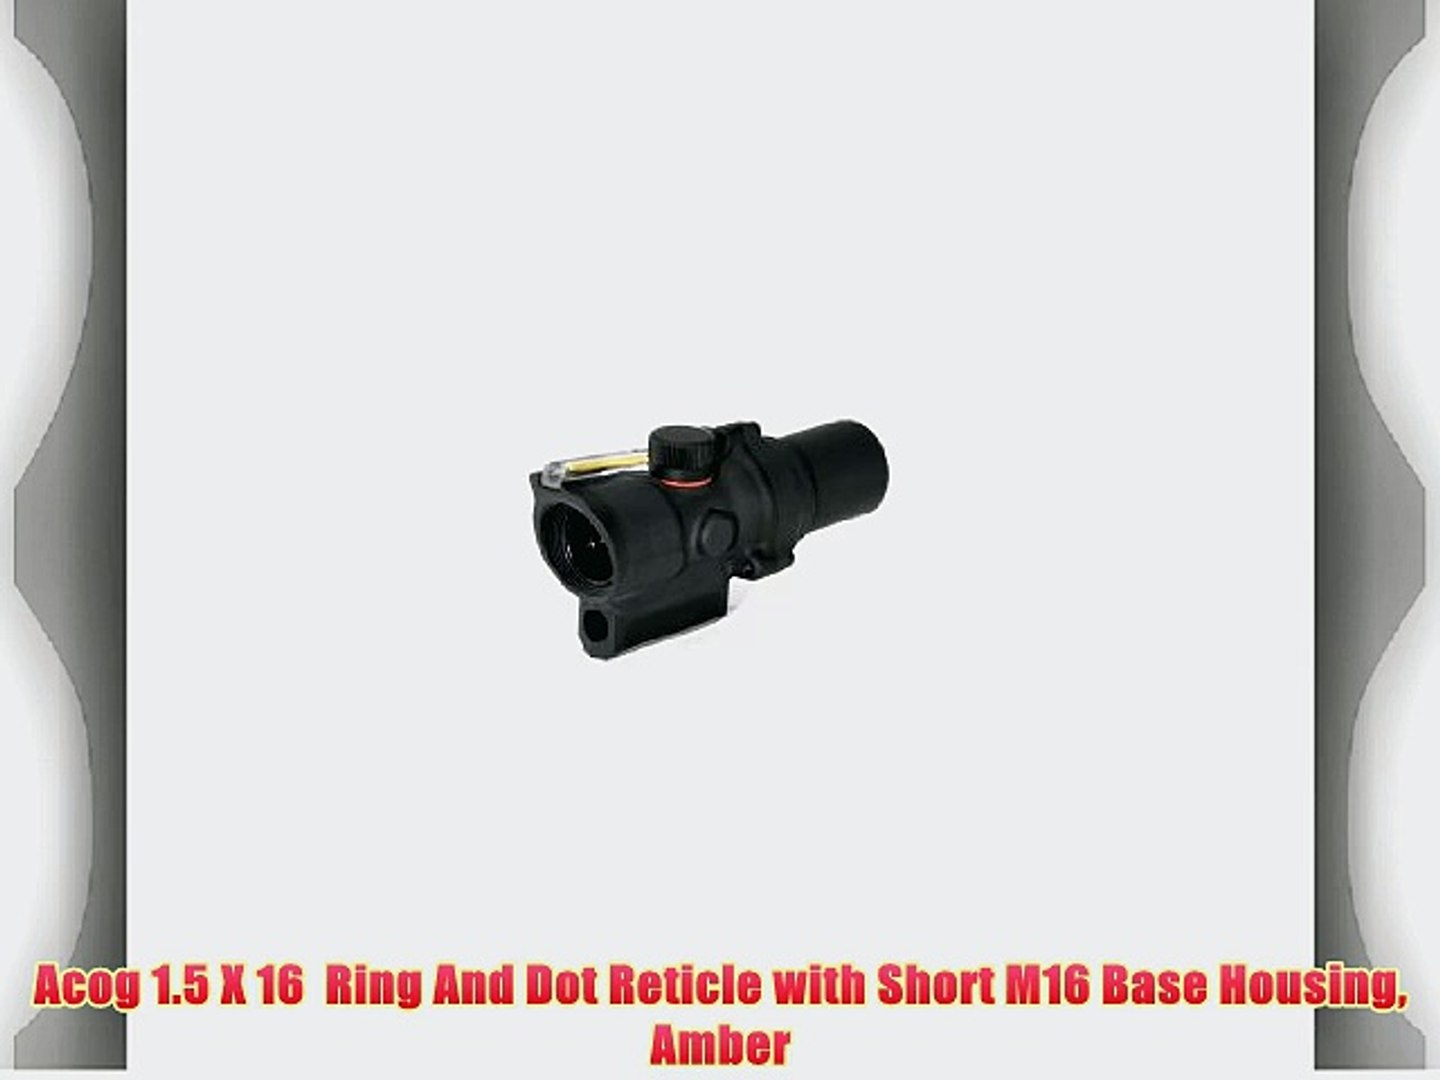 Acog 1 5 X 16? Ring And Dot Reticle with Short M16 Base Housing Amber